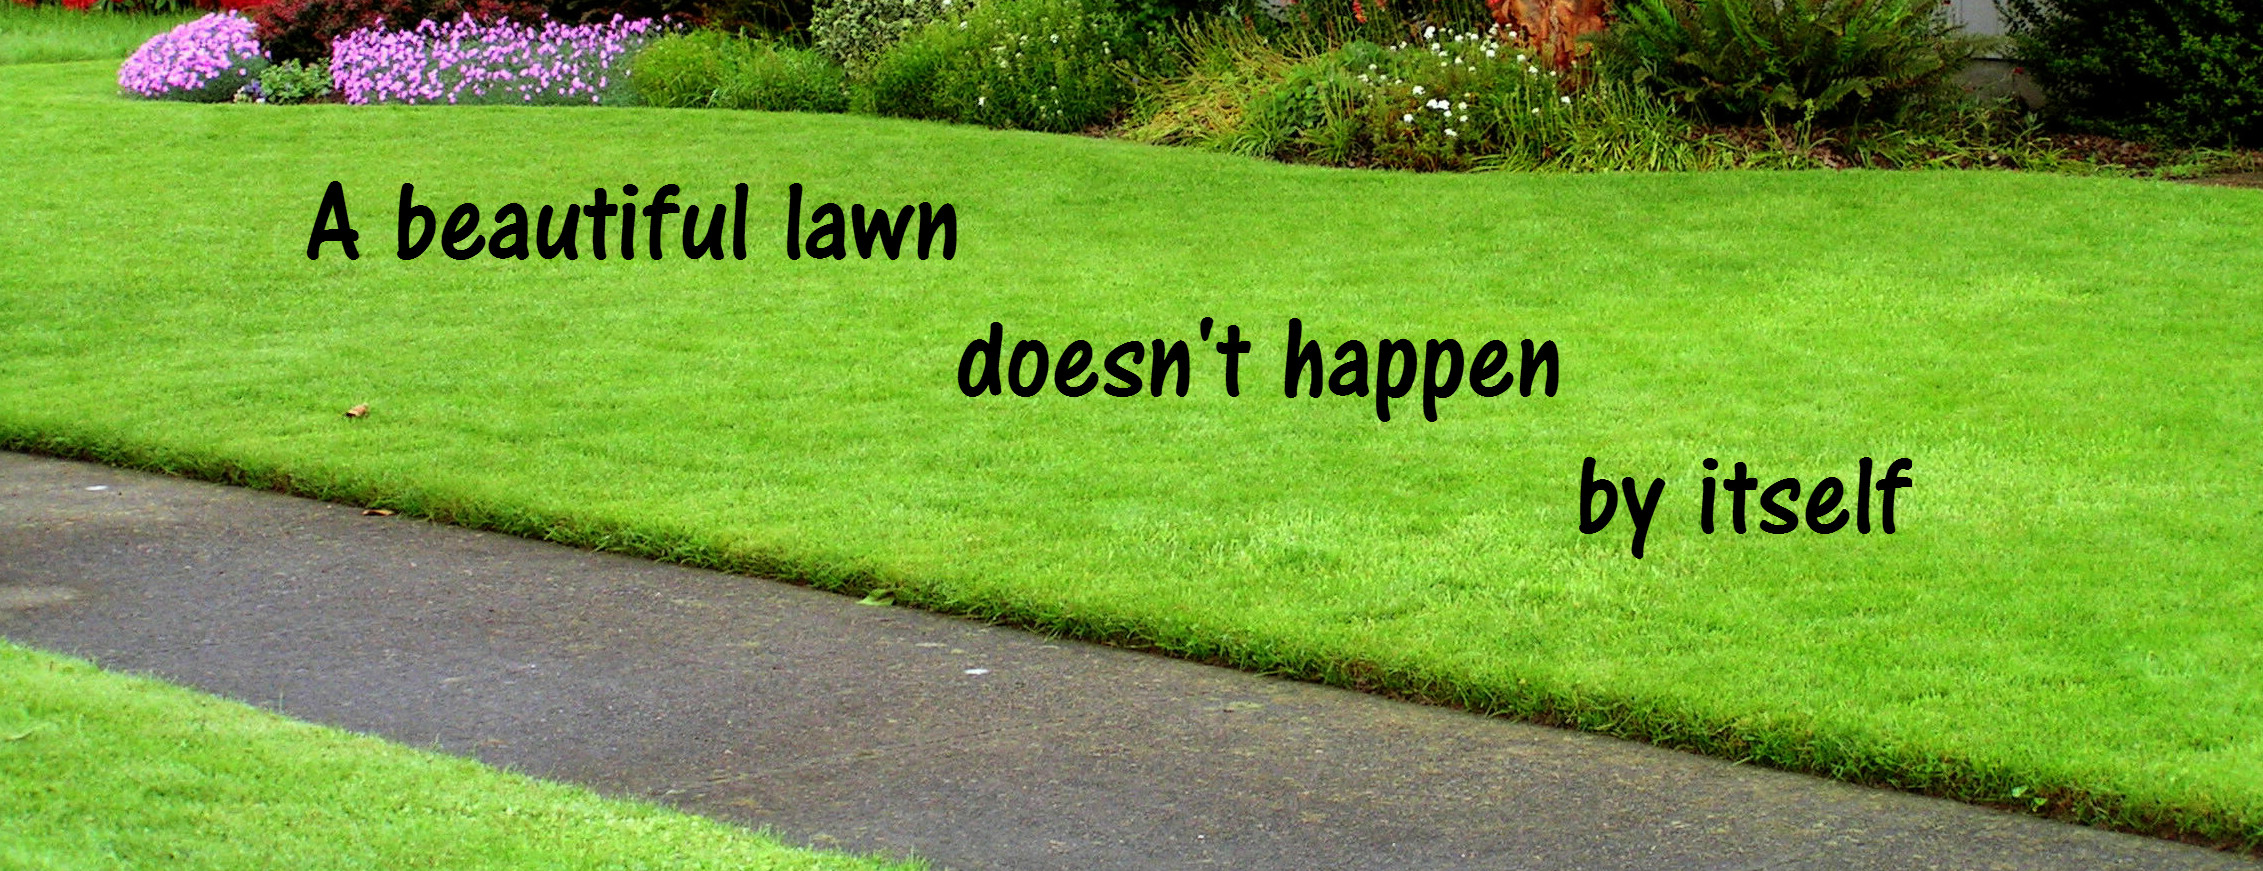 A beautiful lawn doesn't happen by itself 3